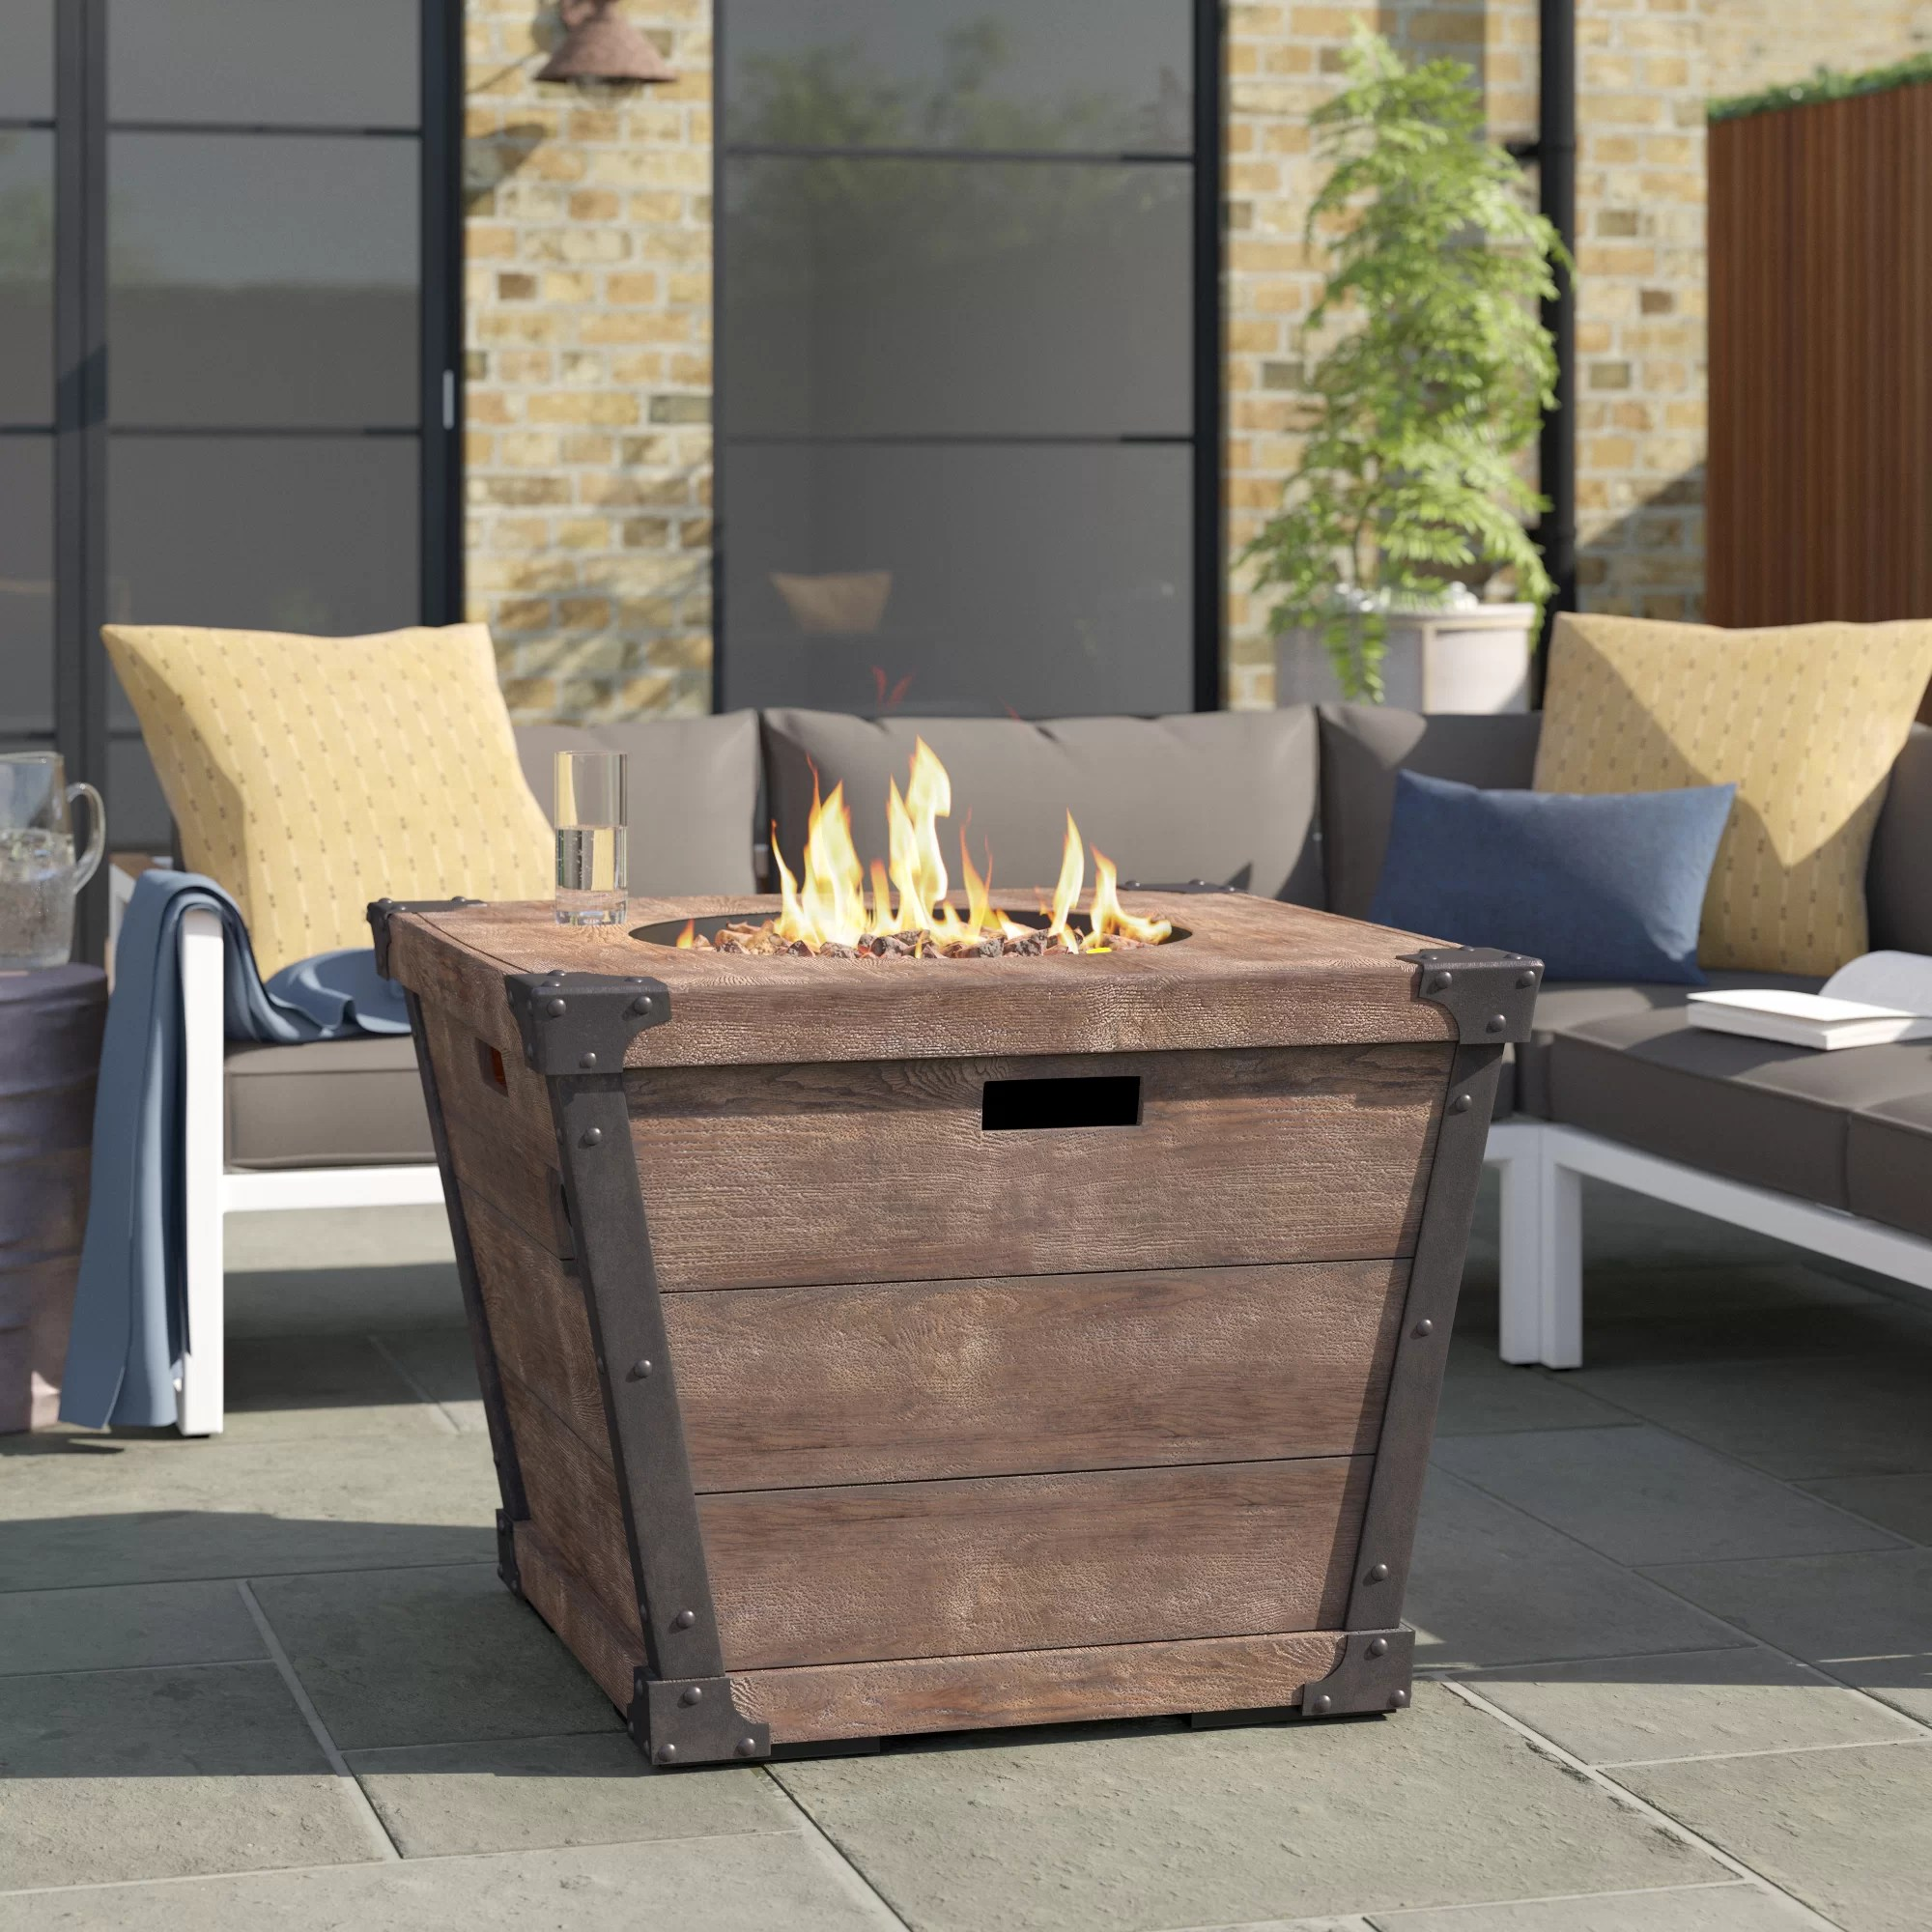 coomes 23 75 h x 32 w concrete propane outdoor fire pit table